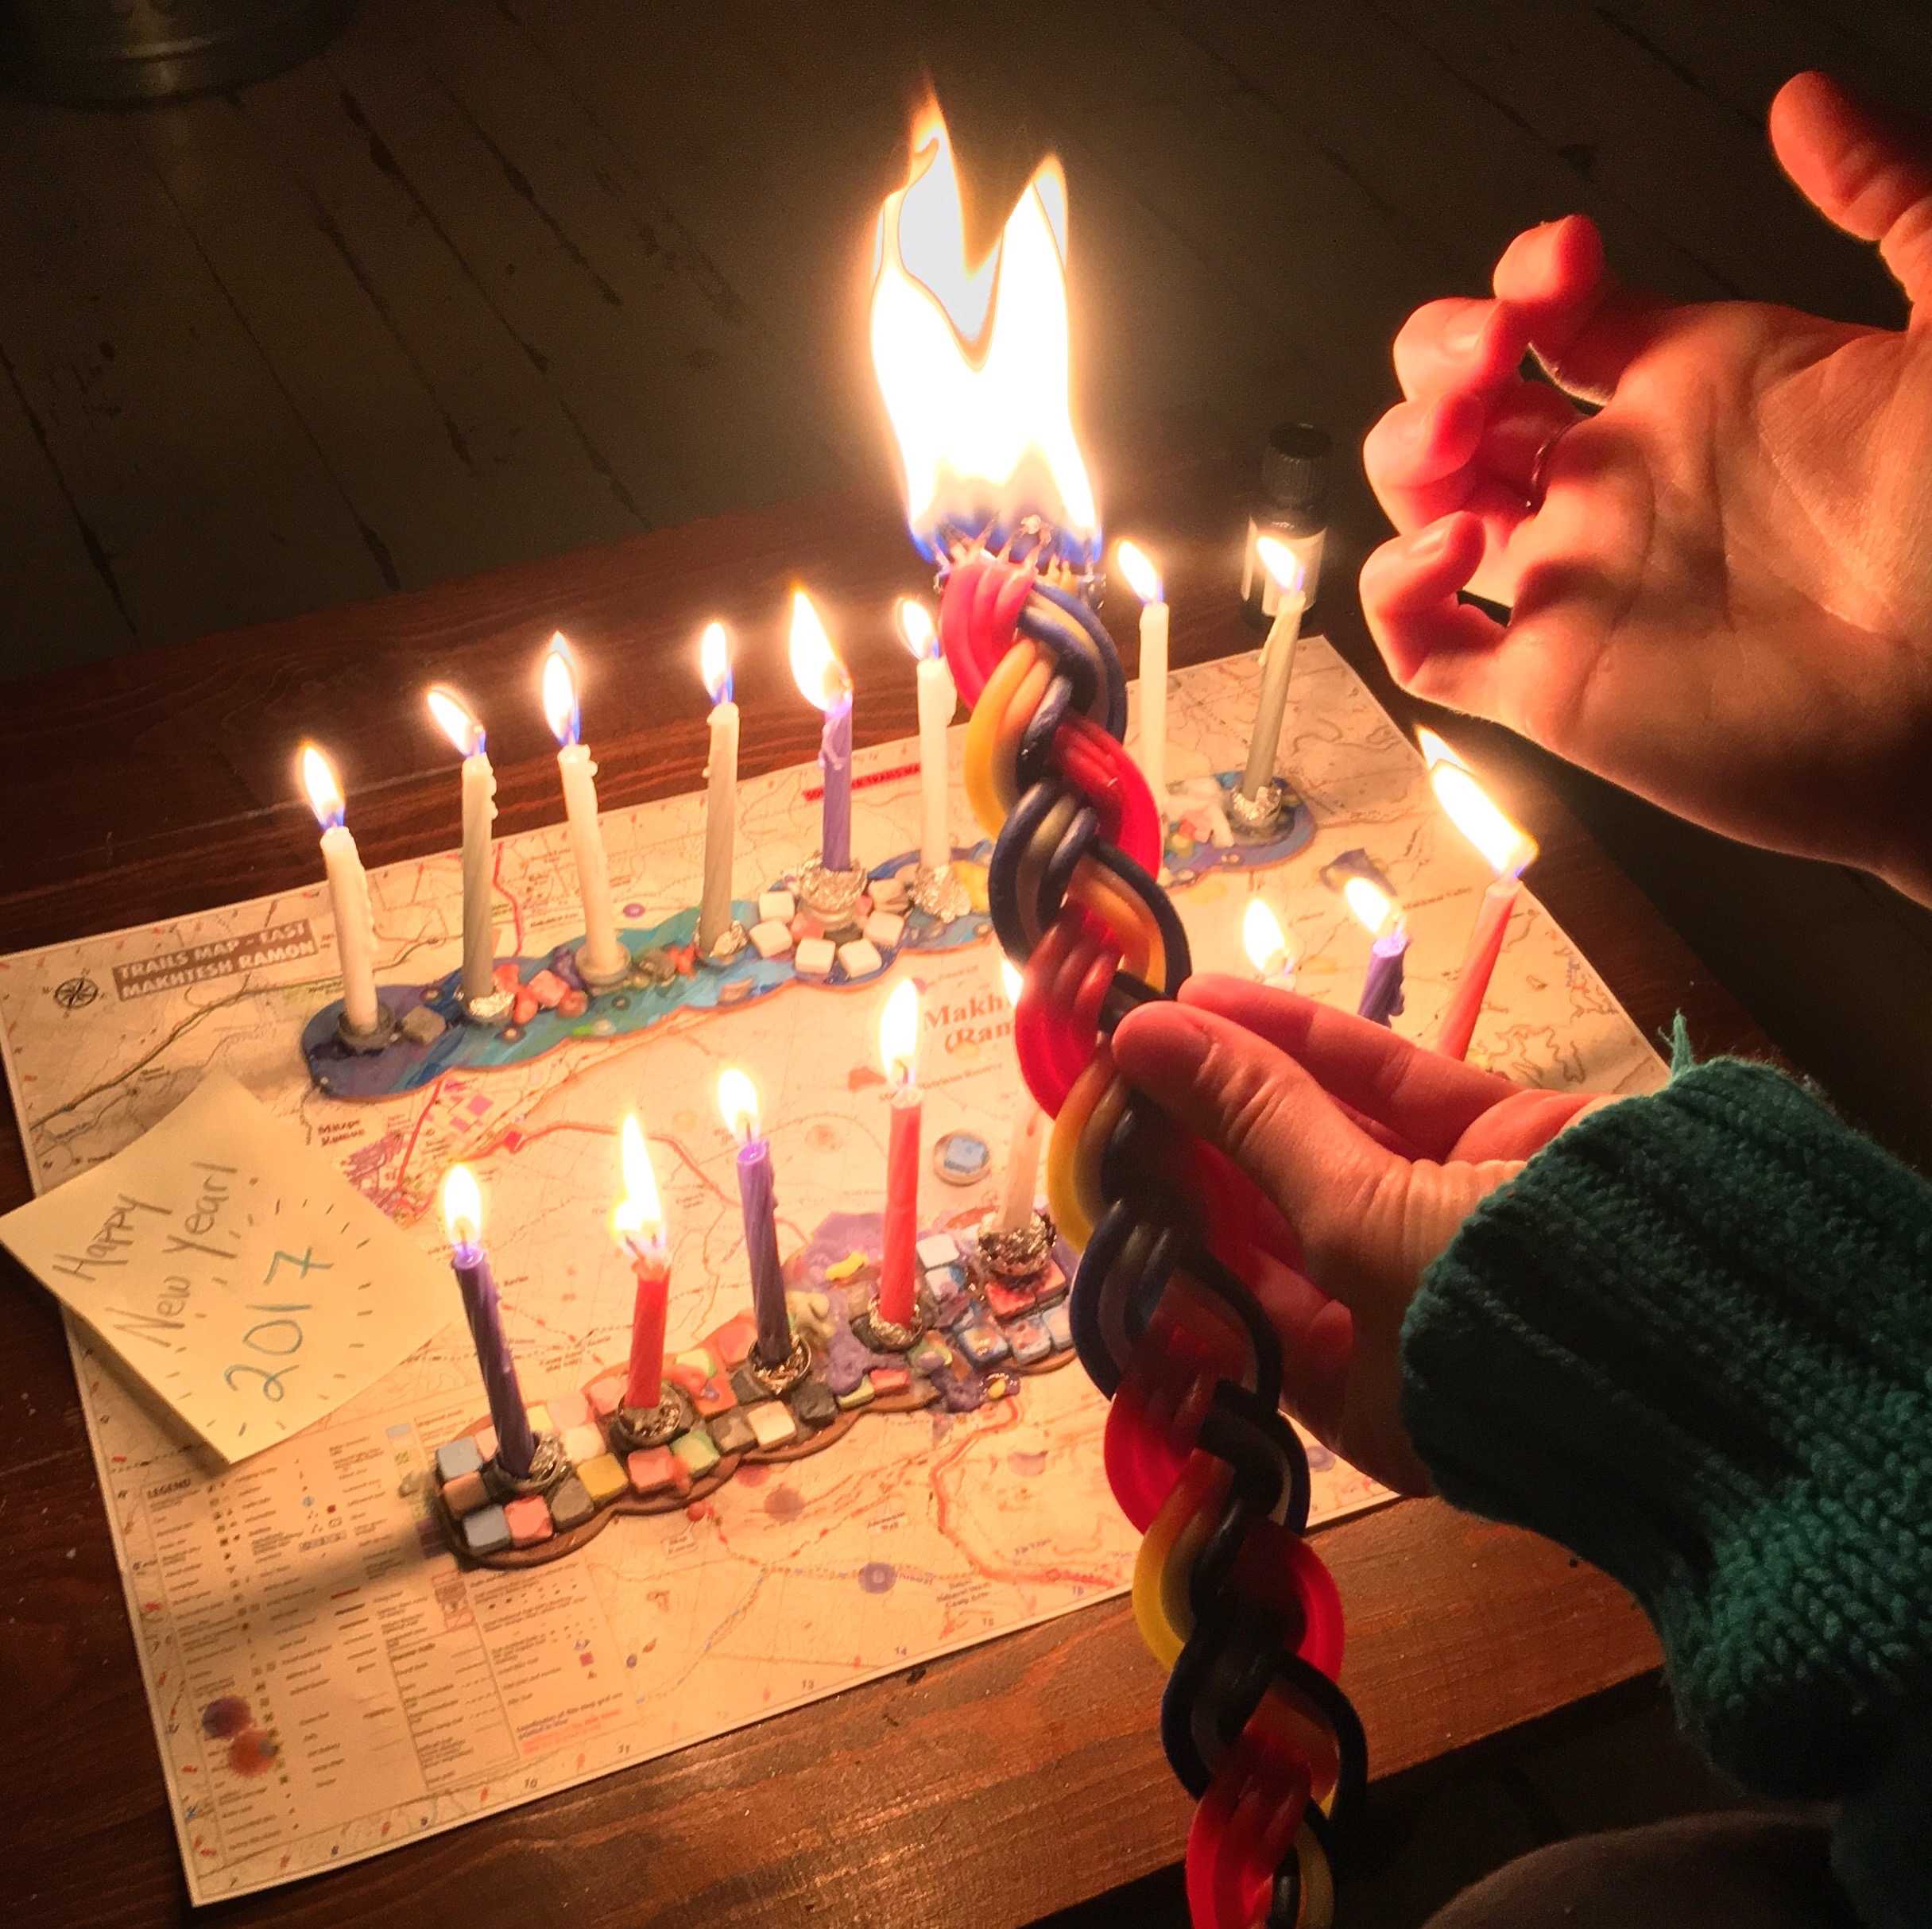 This year, the last night of Hanukah was also on Havdalah  and  New Year's Eve, which was pretty awesome